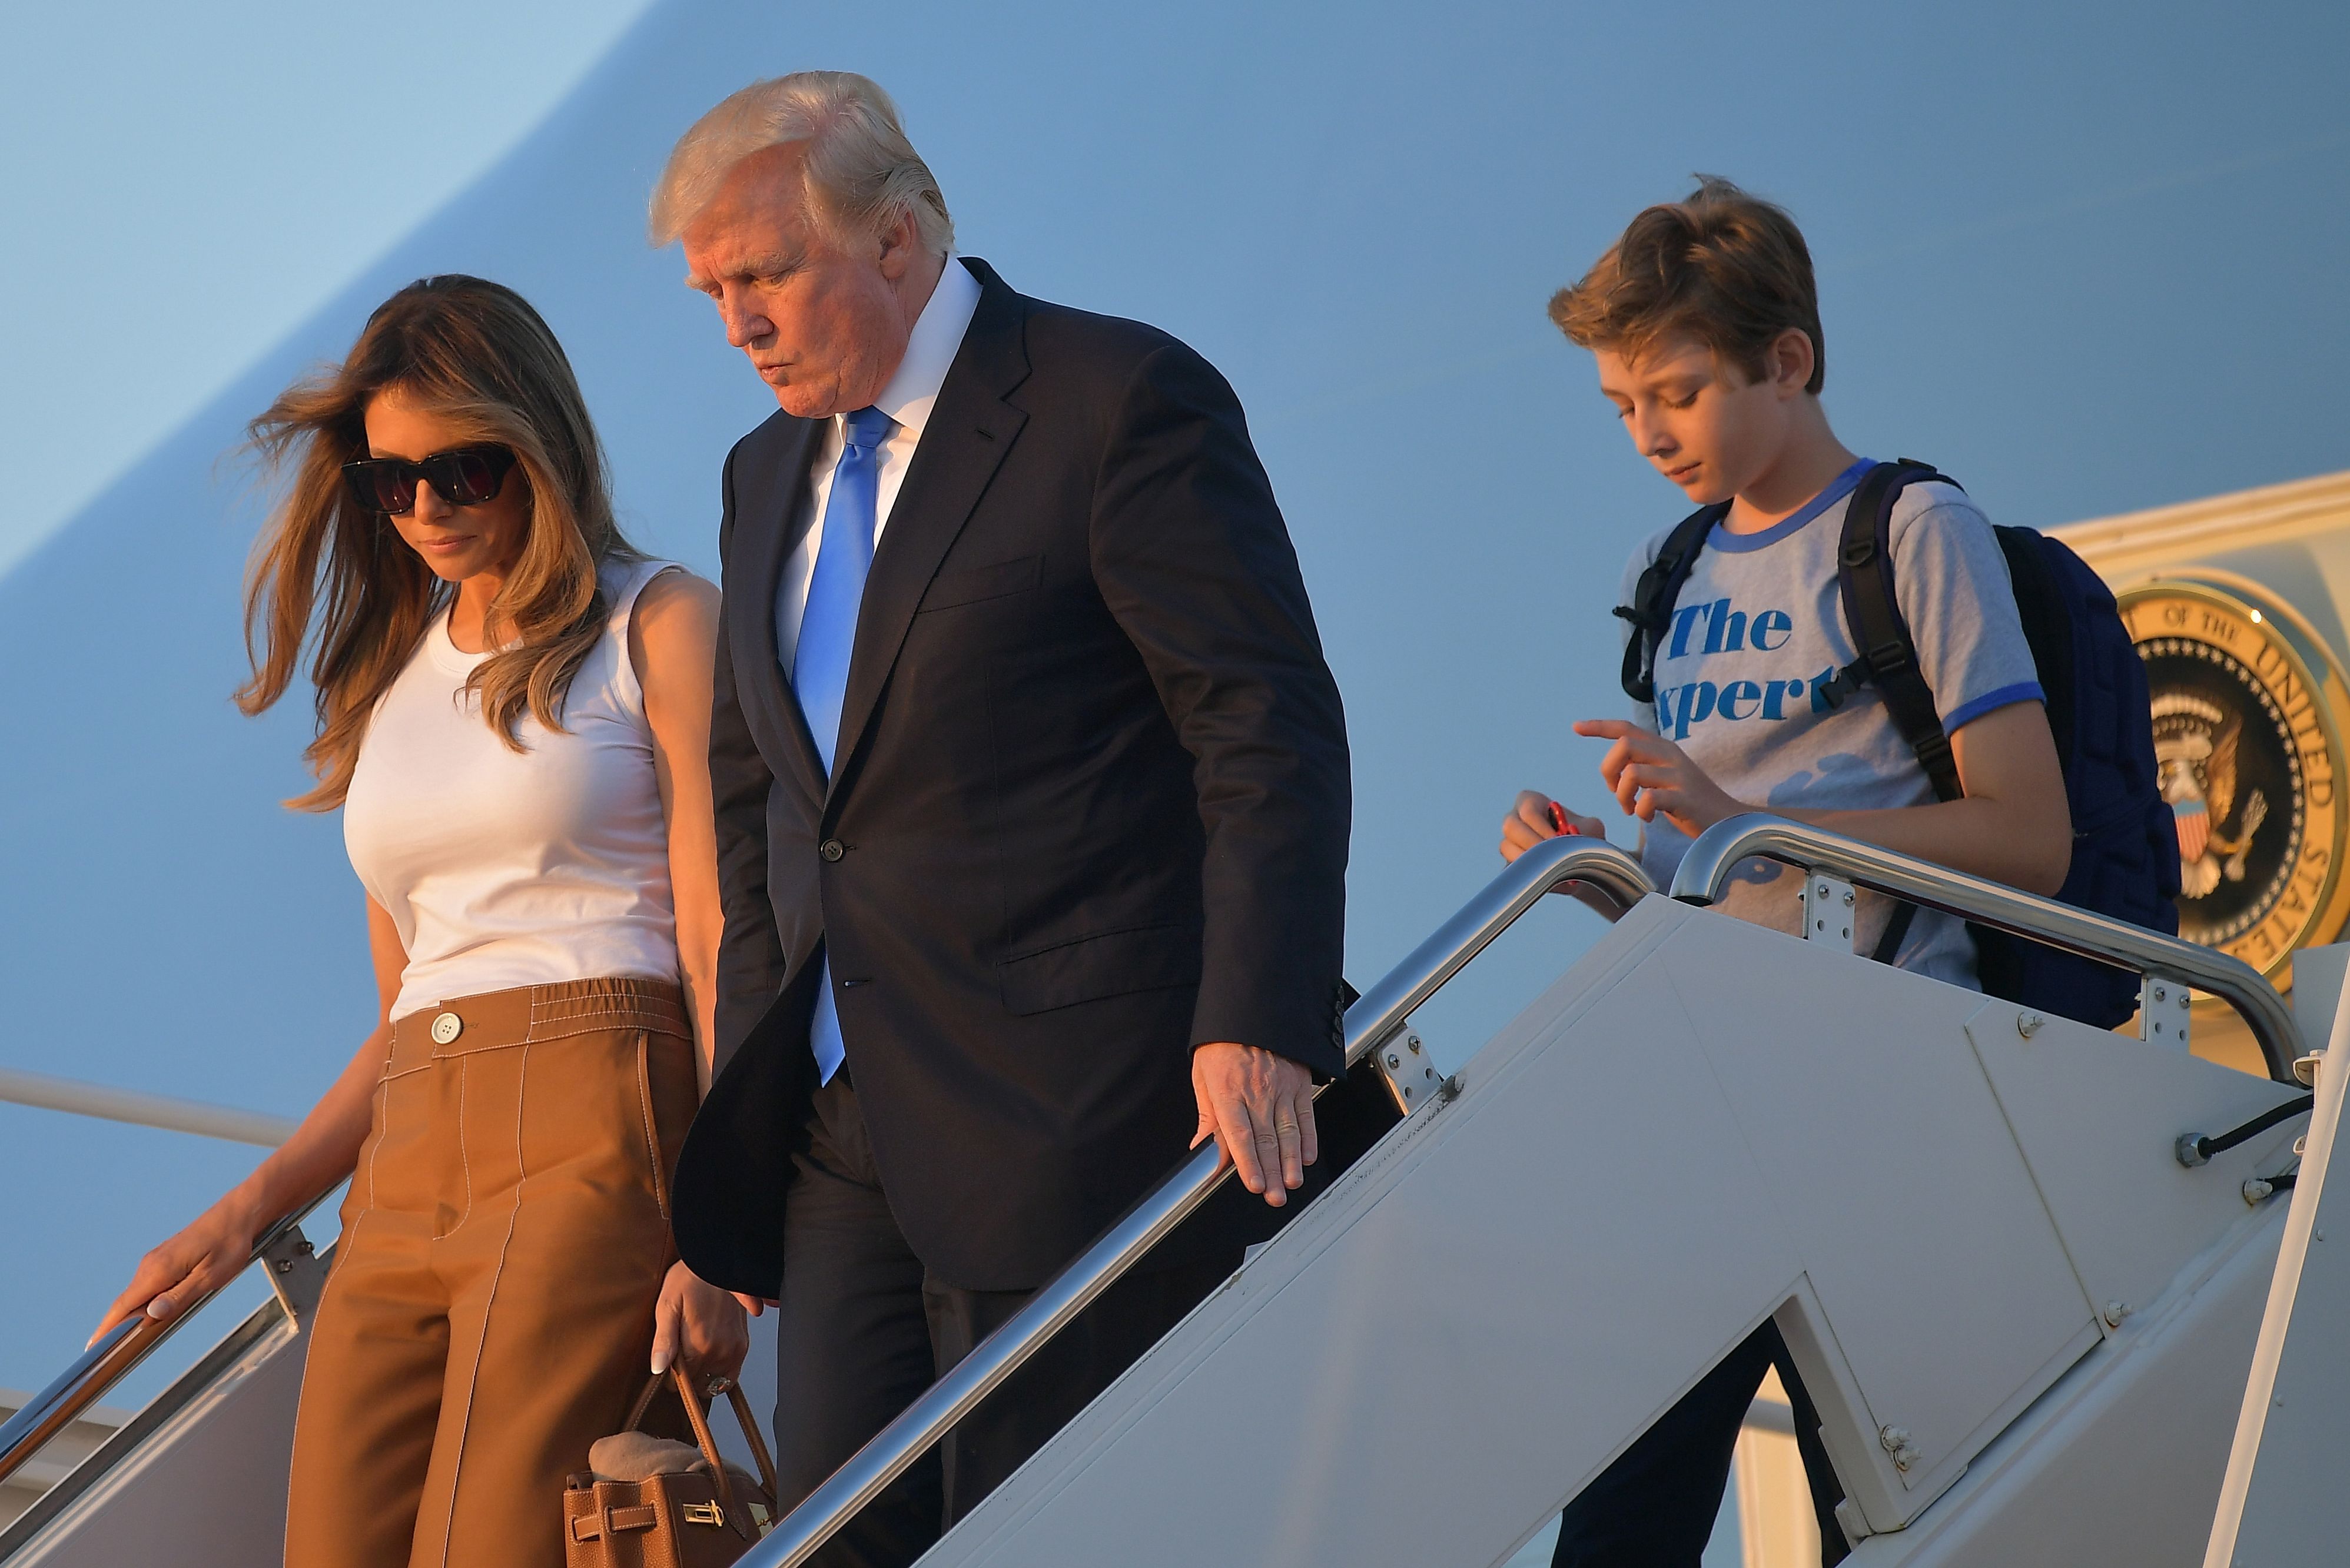 US President Donald Trump (C), first lady Melania Trump, and their son Barron Trump walk off Air Force One after arriving at Andrews Airforce base, Maryland on June 11 2017. Trump is returning to Washington, DC after spending the weekend at this Bedminster, New Jersey golf club. MANDEL NGAN/AFP/Getty Images